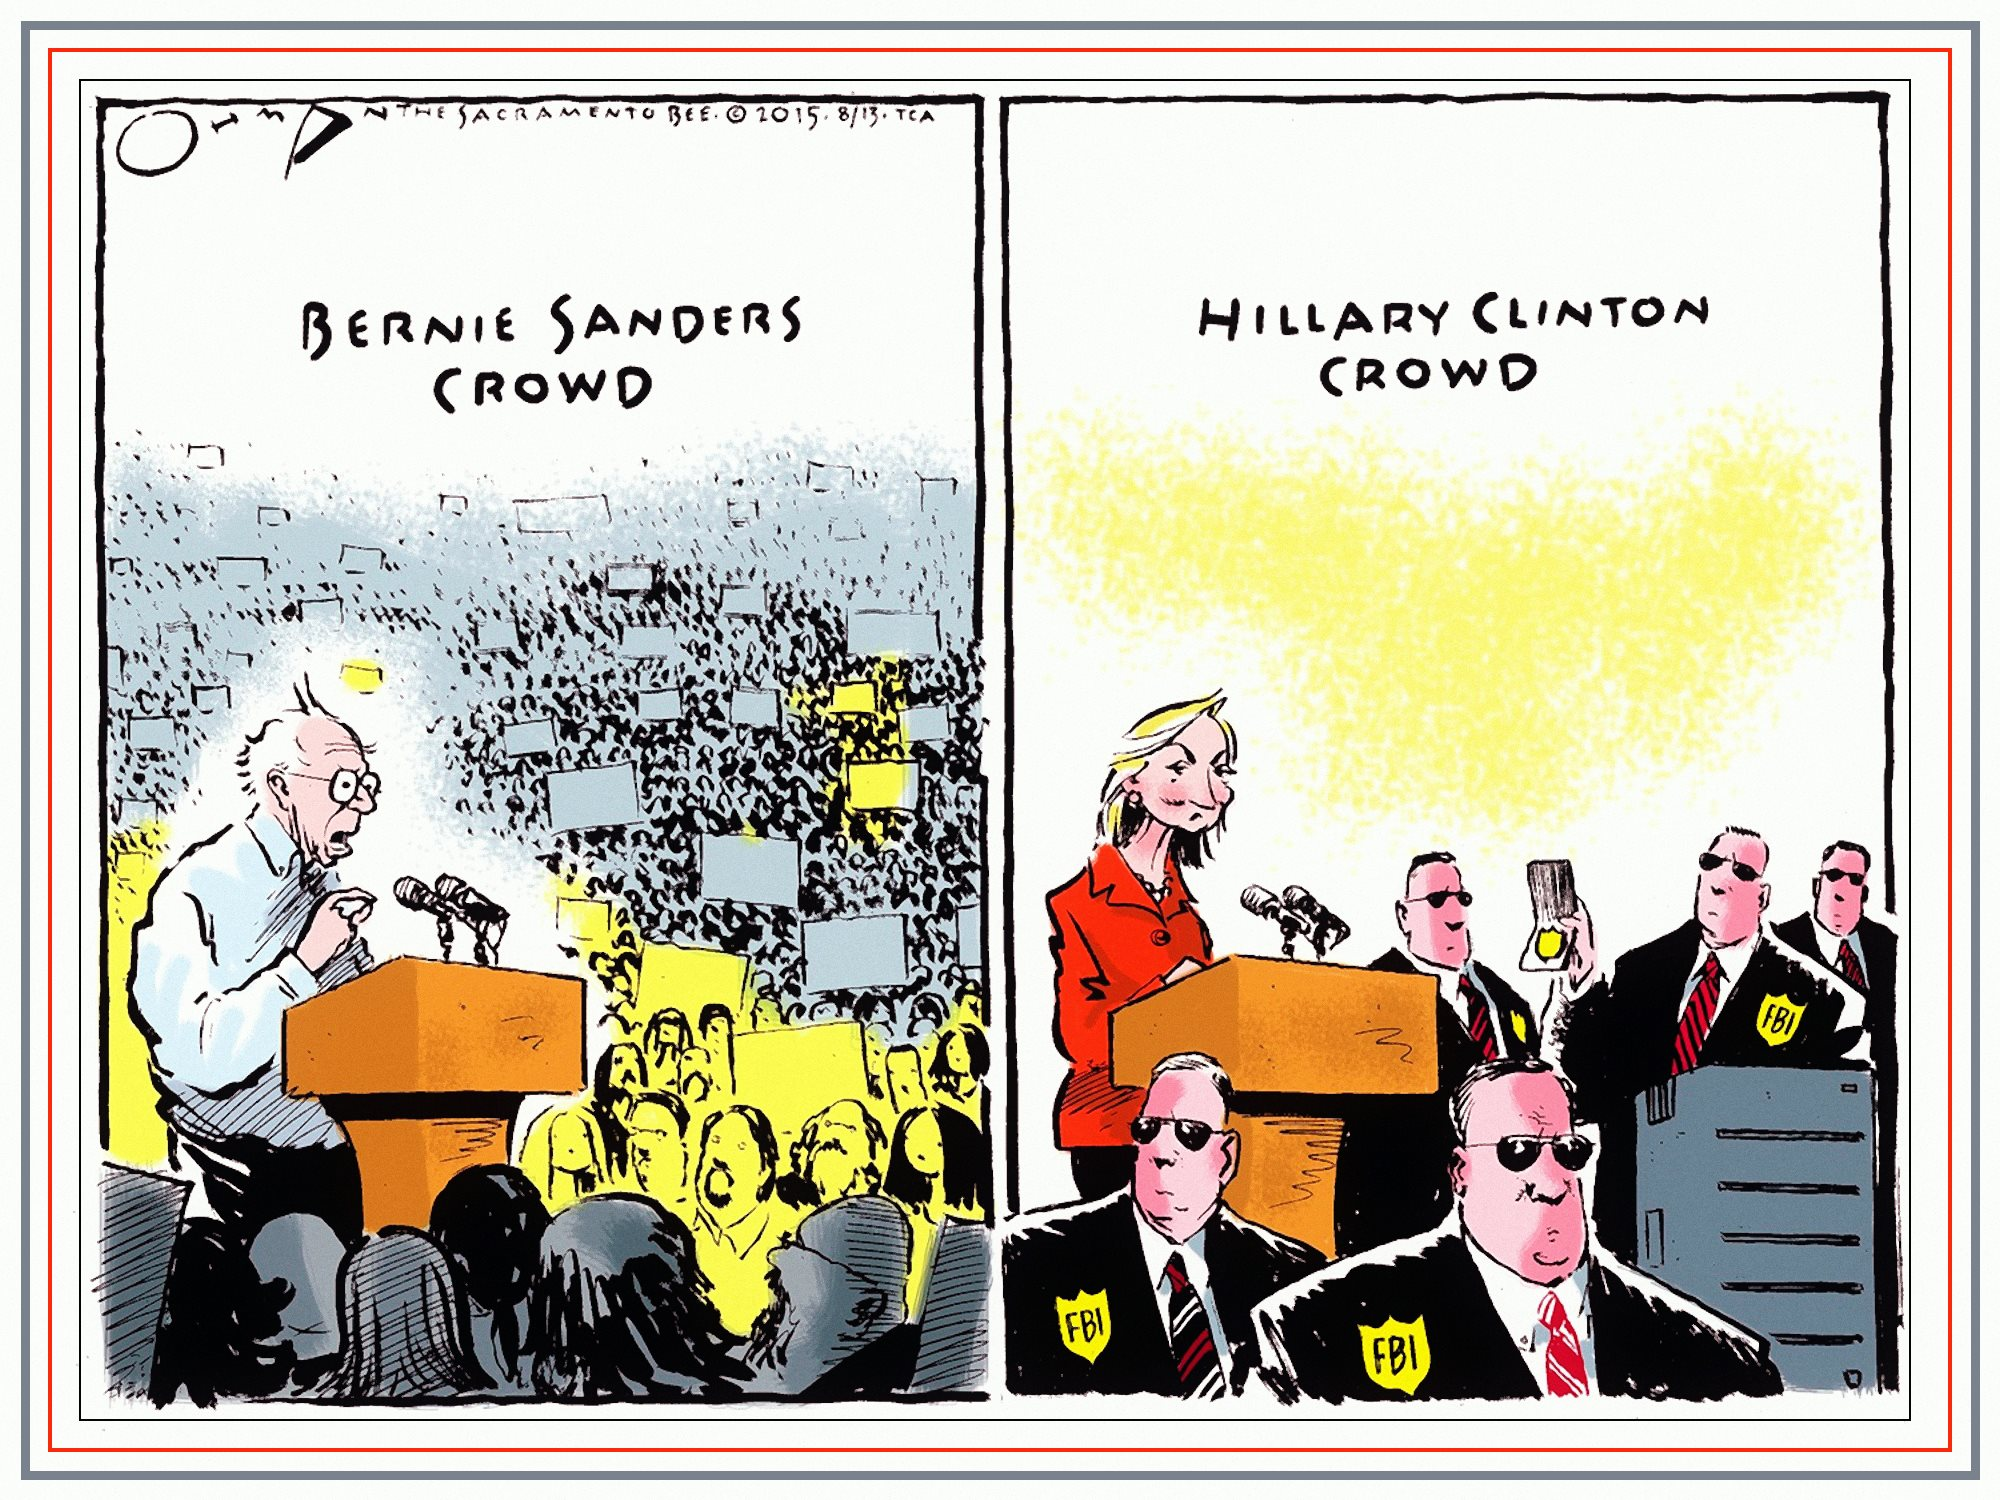 00 Jack Ohman. Bernie Sanders Crowd... Hillary Clinton Crowd. 2015